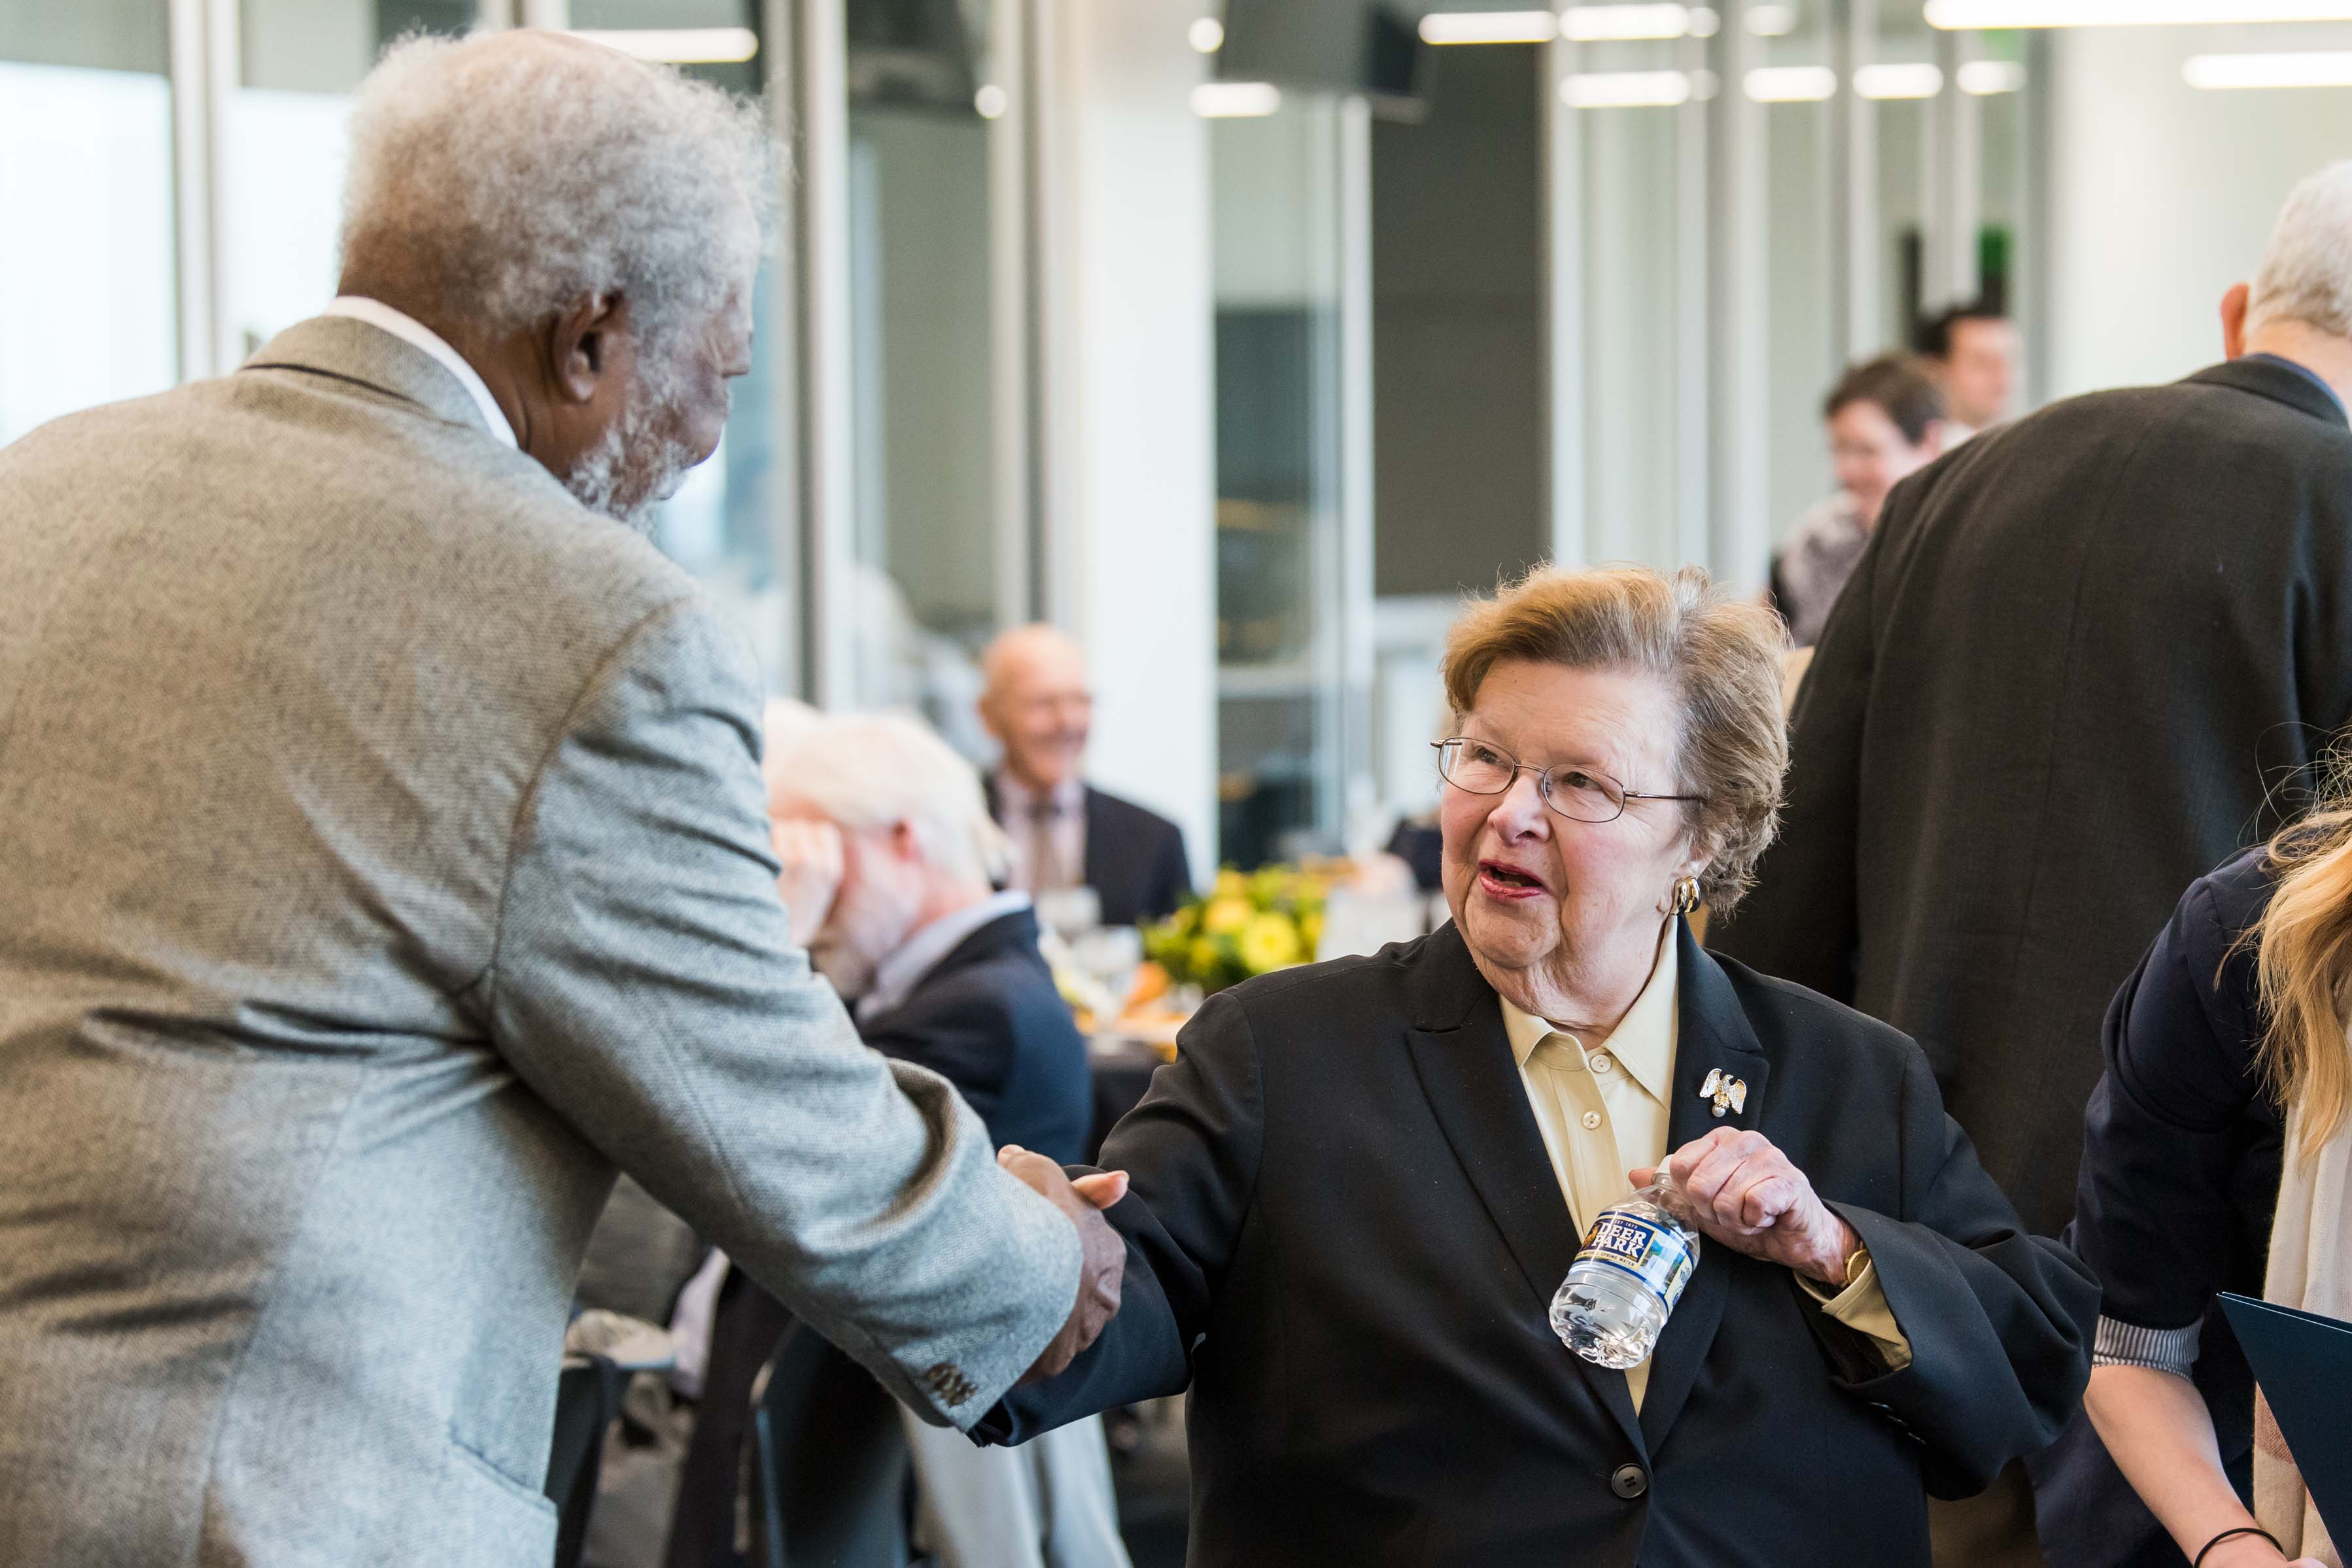 Two people shake hands at Wisdom Institute lunch